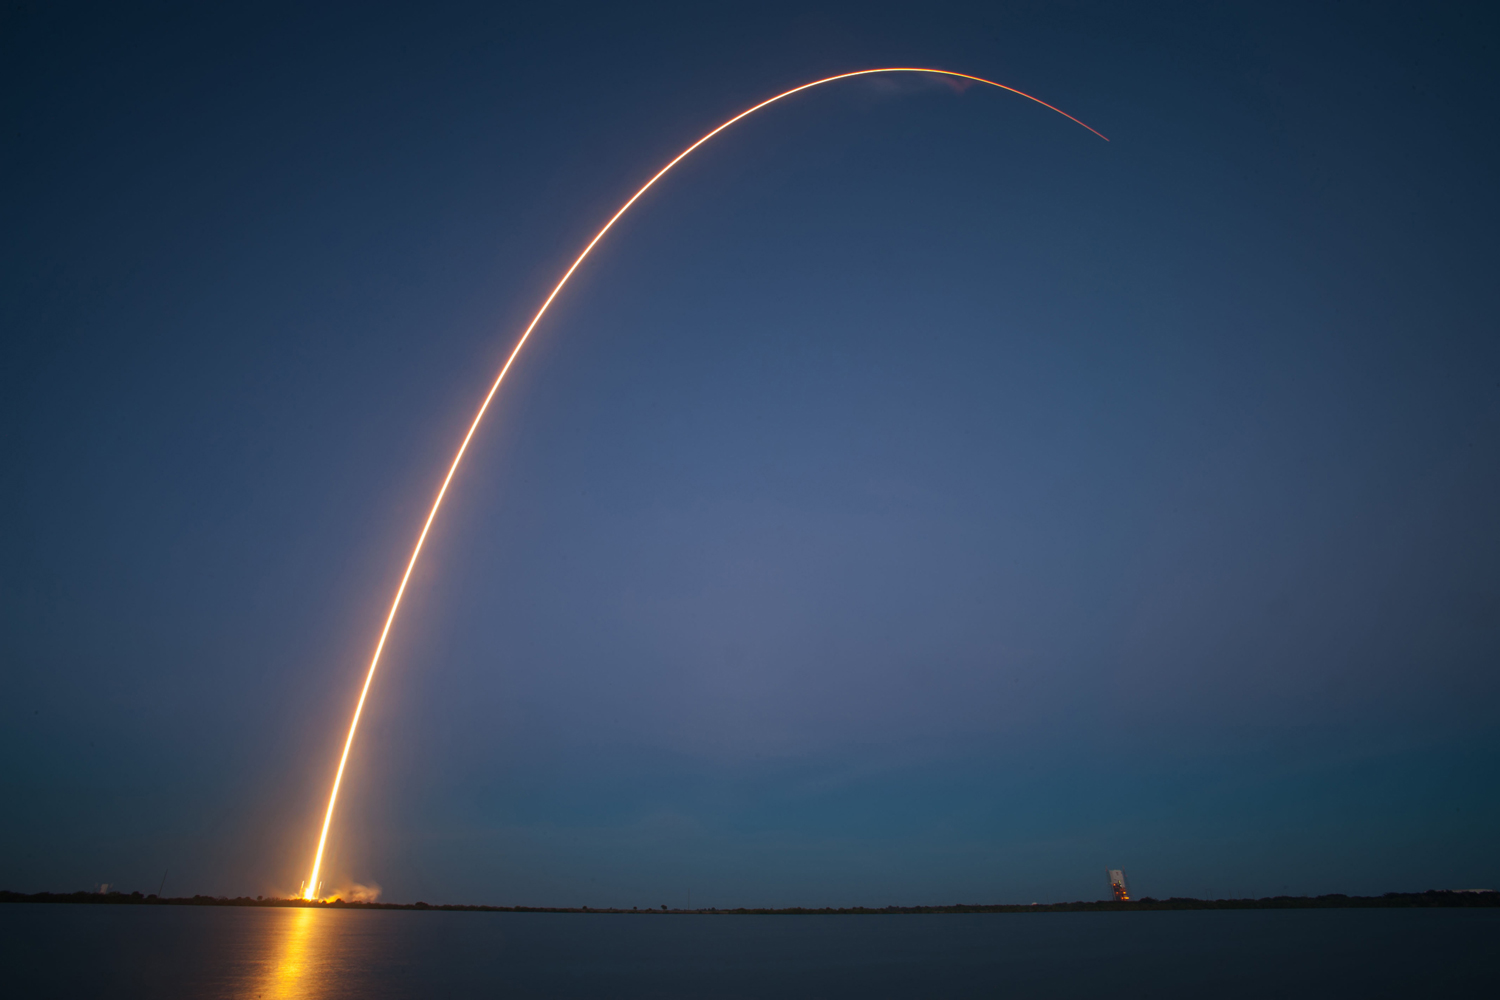 SpaceX's Falcon 9 launches from Cape Canaveral, on Nov. 28, 2013.